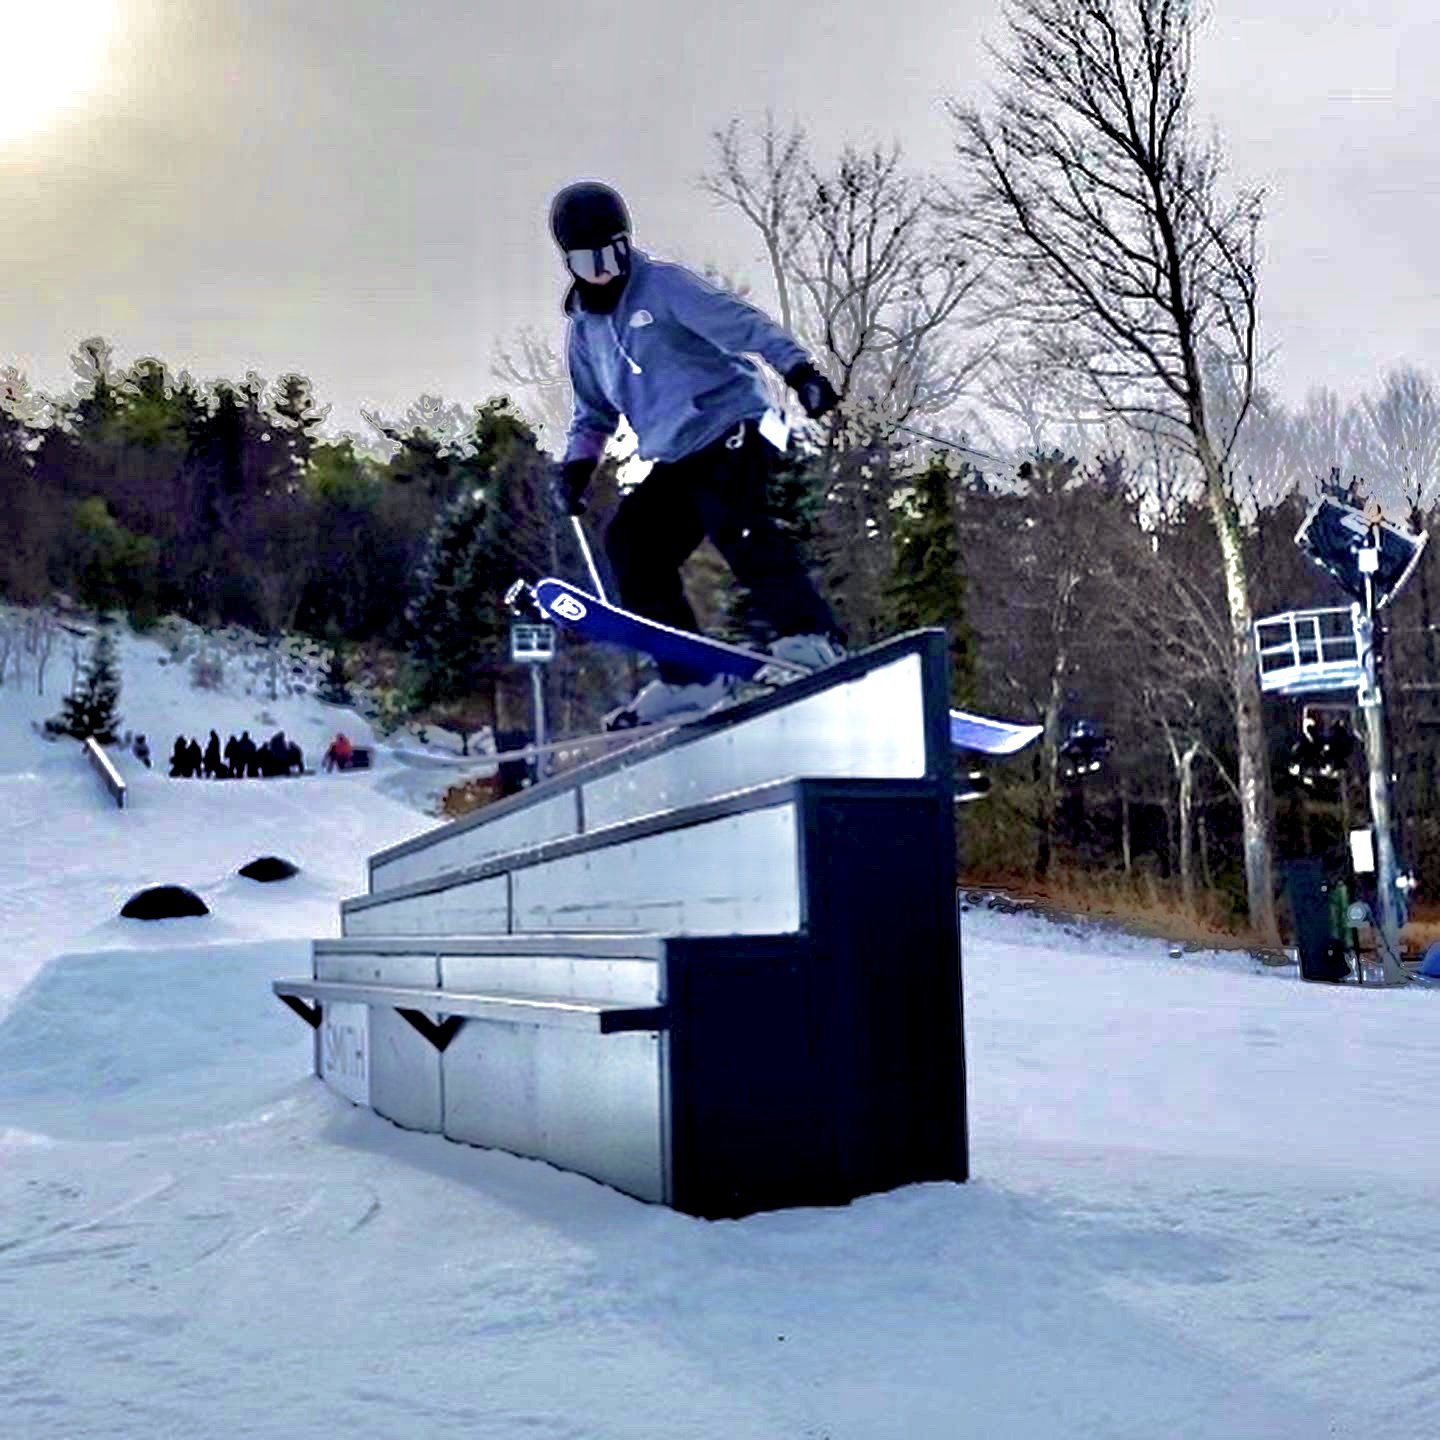 Rail Slide @bigboulder